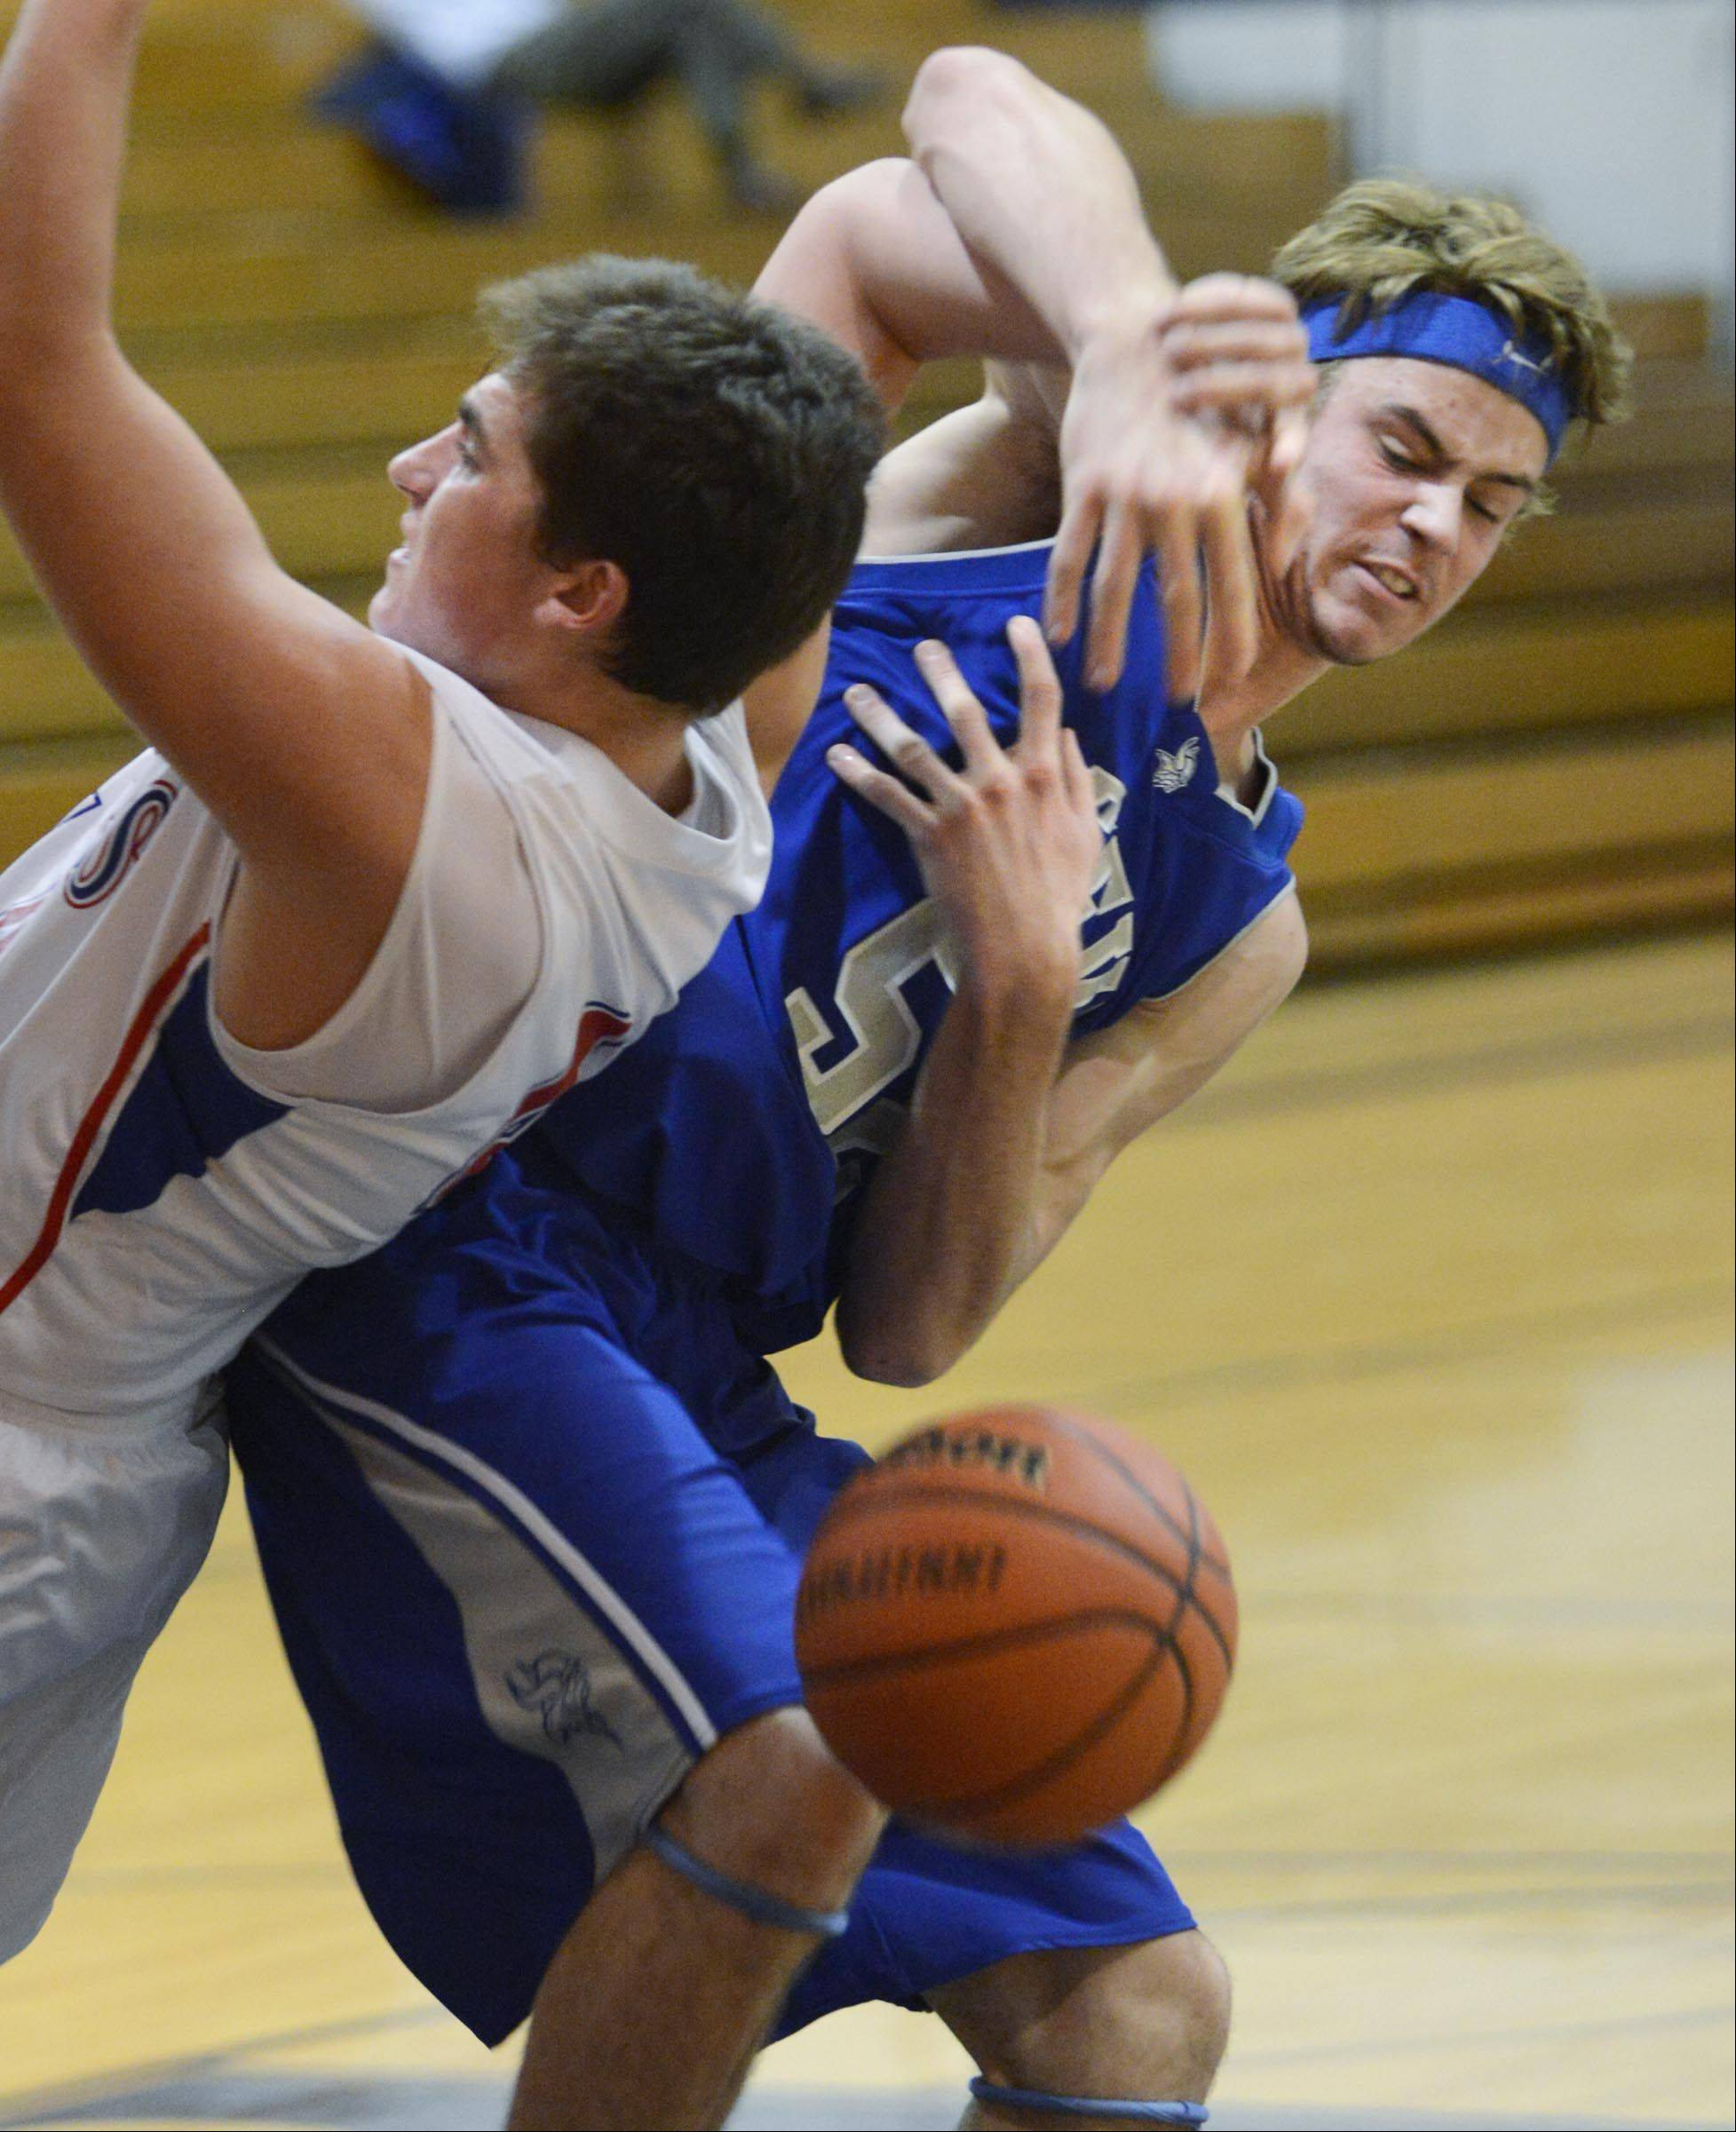 Geneva's Mike Landi, right, and Marmion Academy's Danny Bicknell tangle under the basket Monday in the Wildcat Turkey Classic in West Chicago.